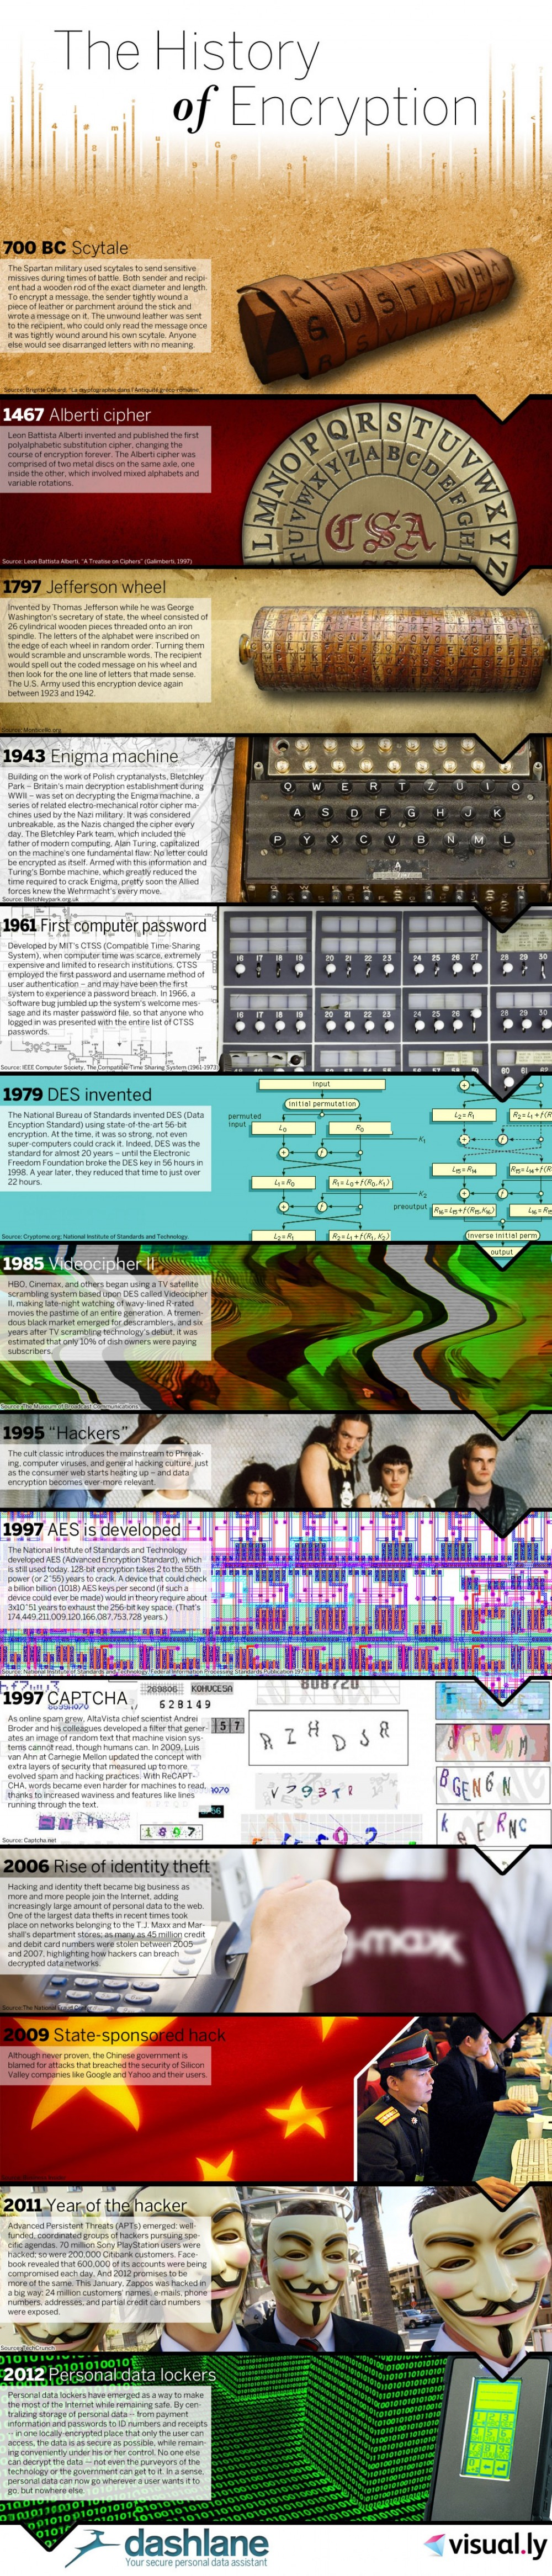 The History of Encryption - Infographic